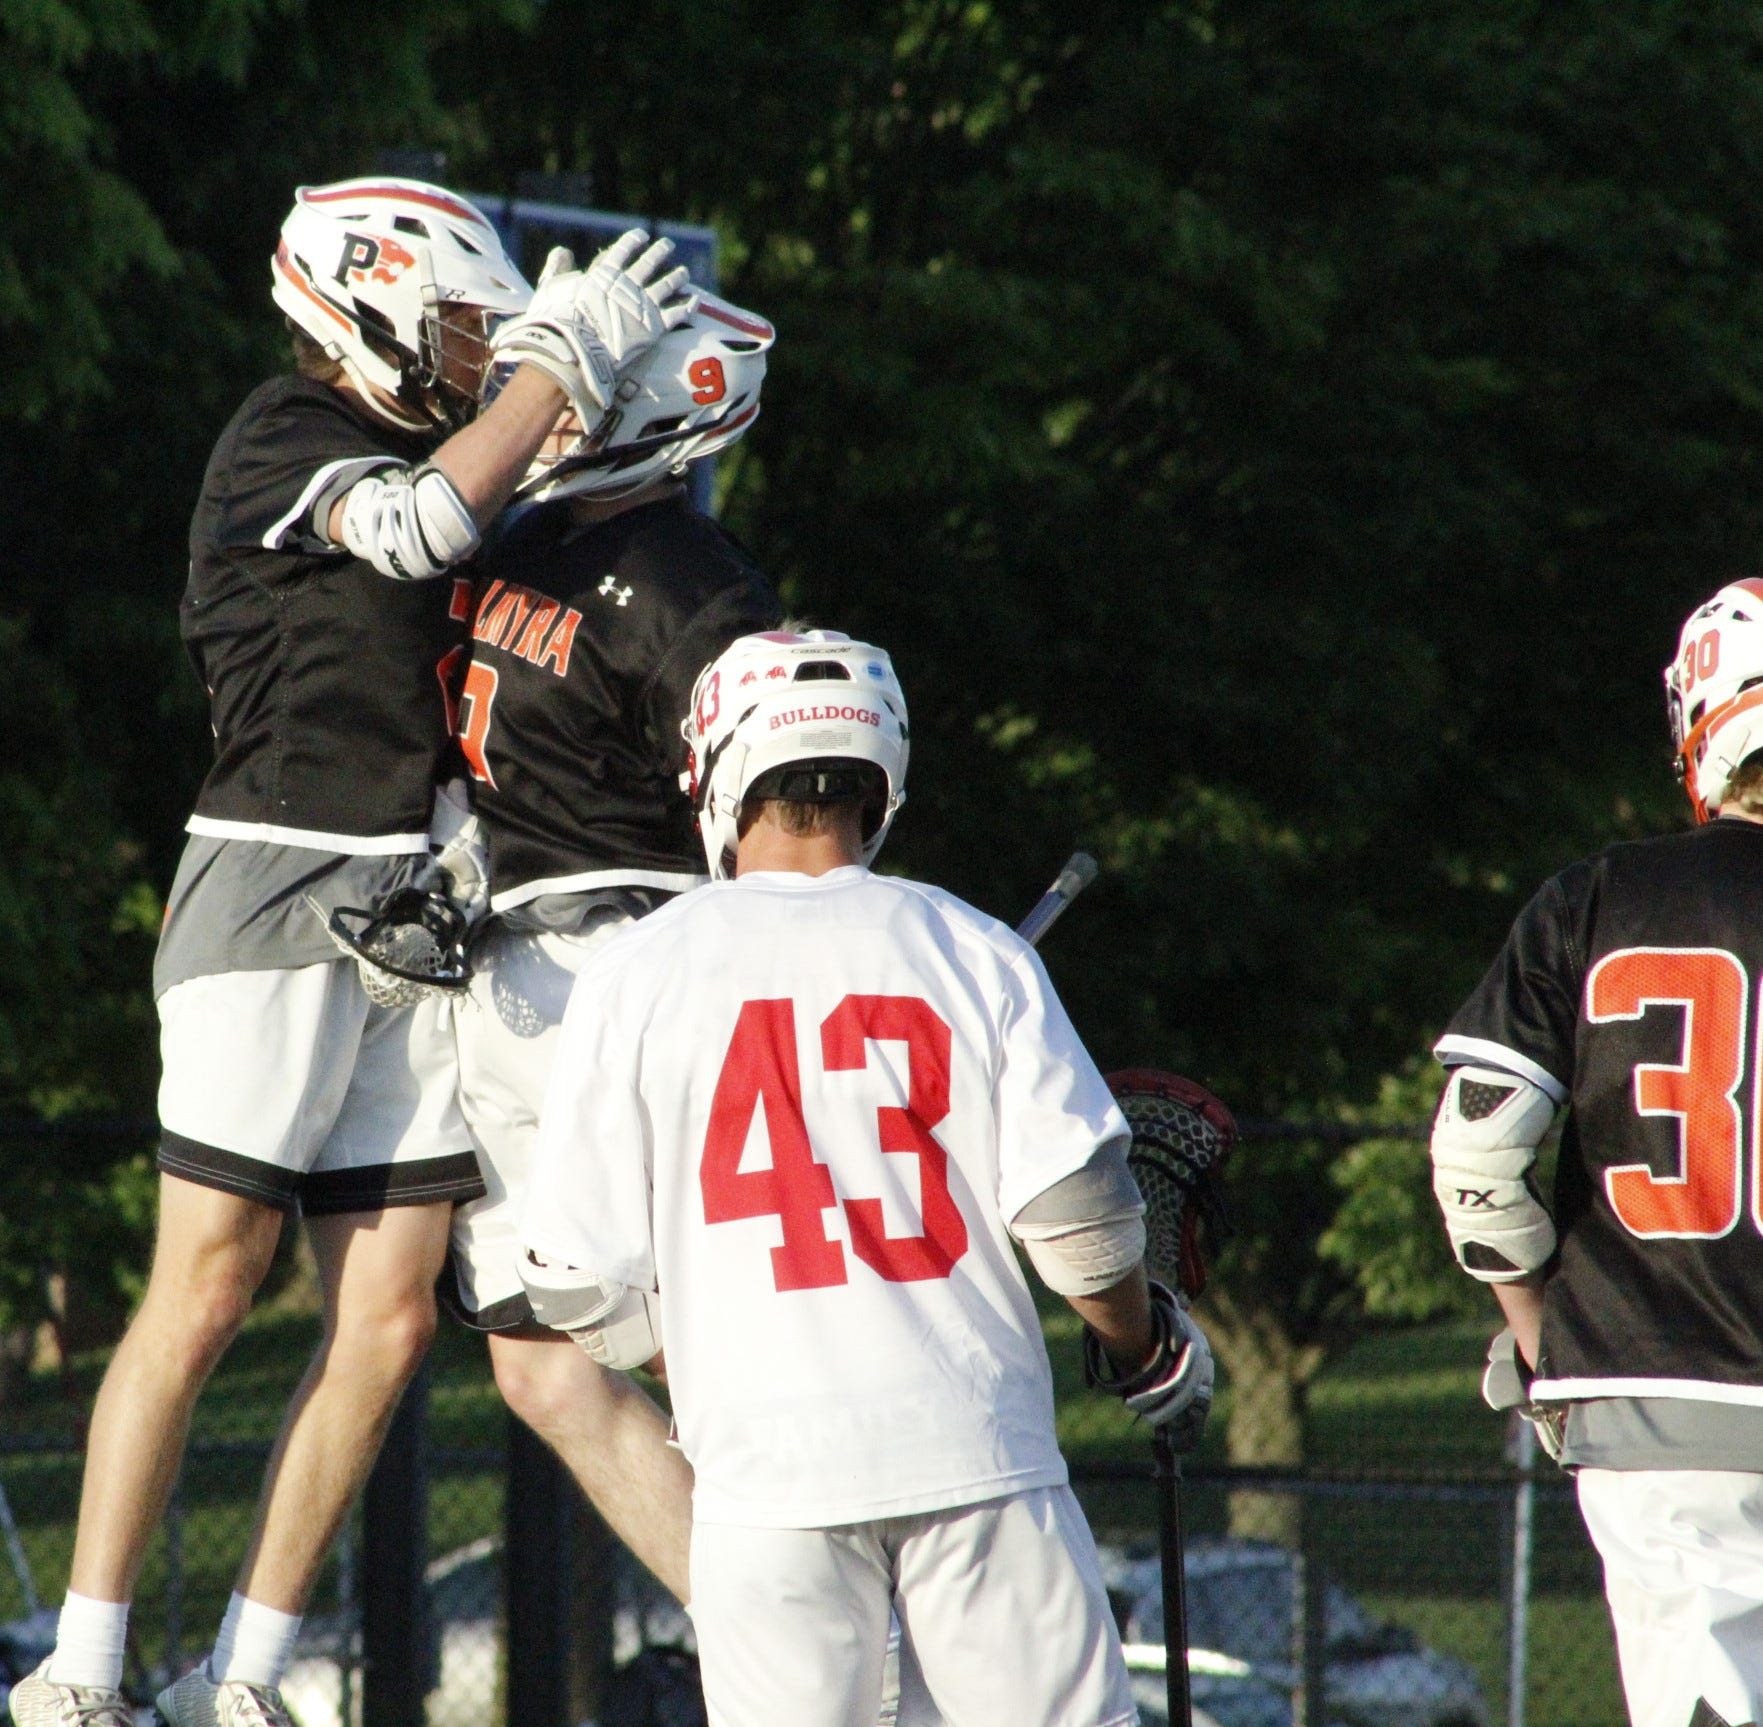 DISTRICT 3 ROUNDUP: Palmyra lax bound for district title game, baseball opens with win